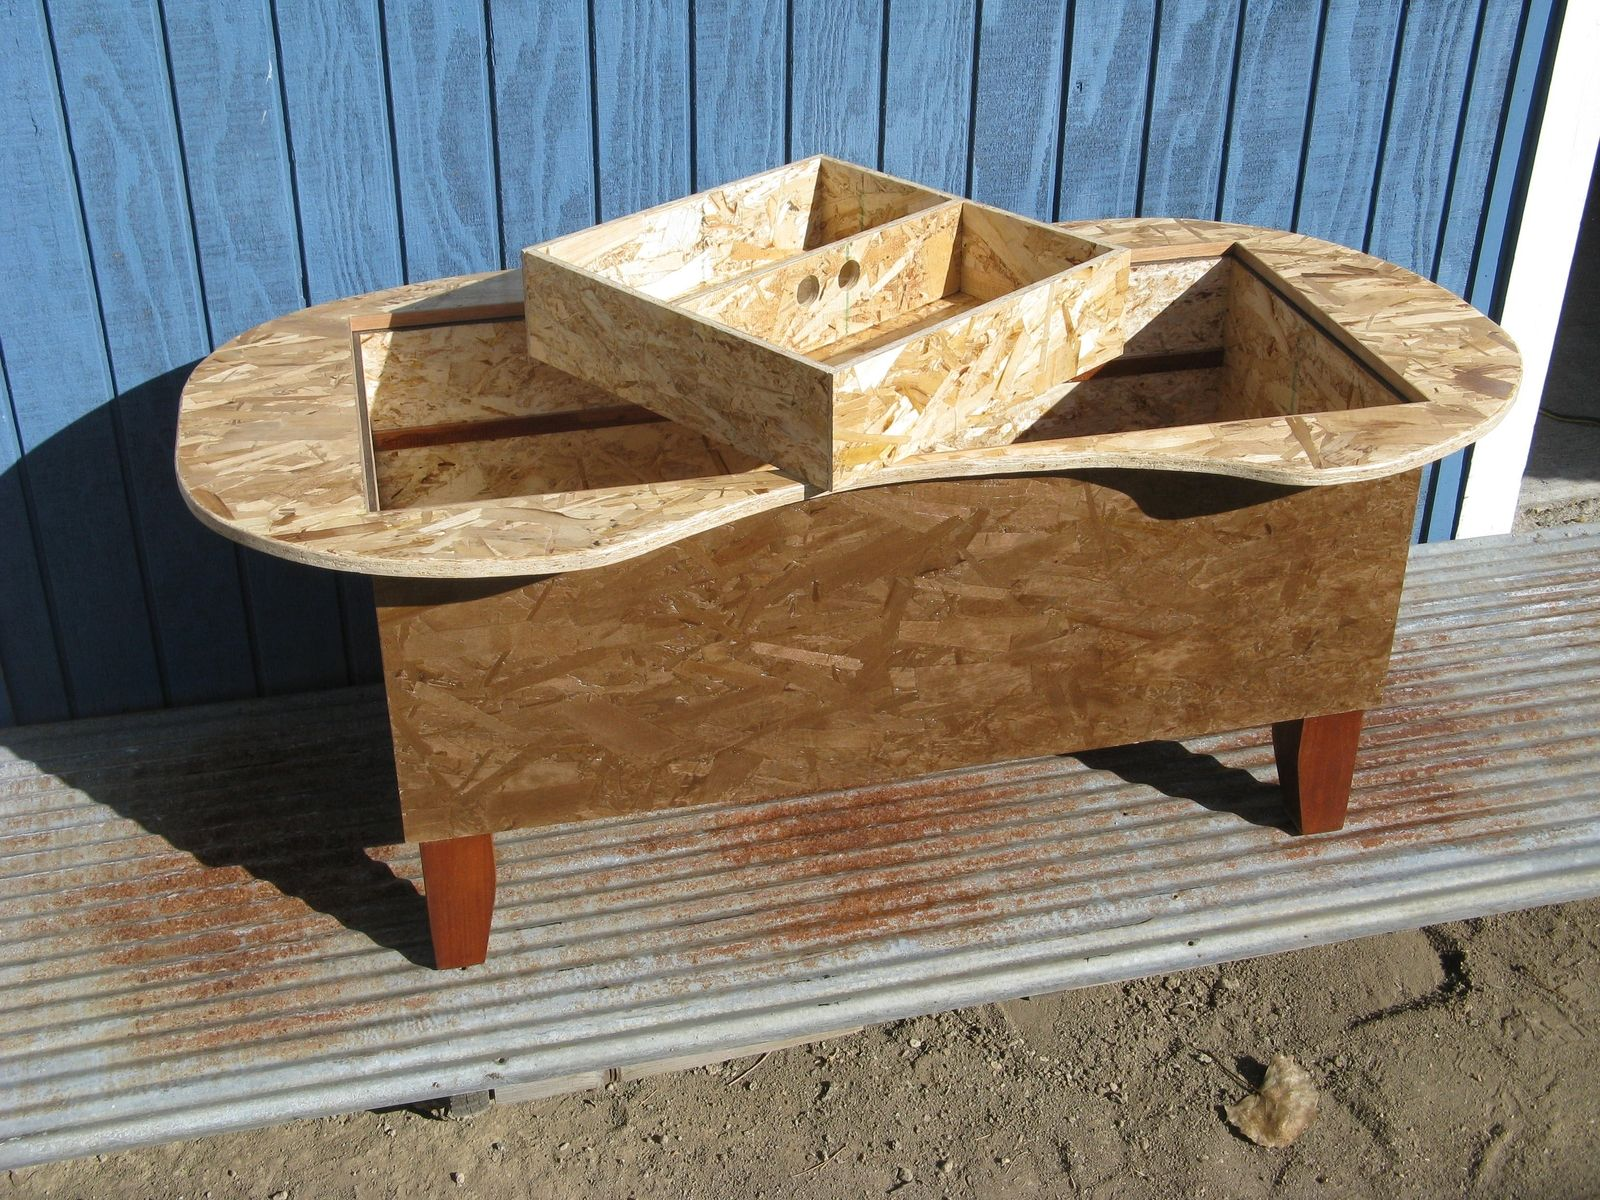 Hand Crafted Bathtub Kidney Bean Shaped Coffee Table by Modular